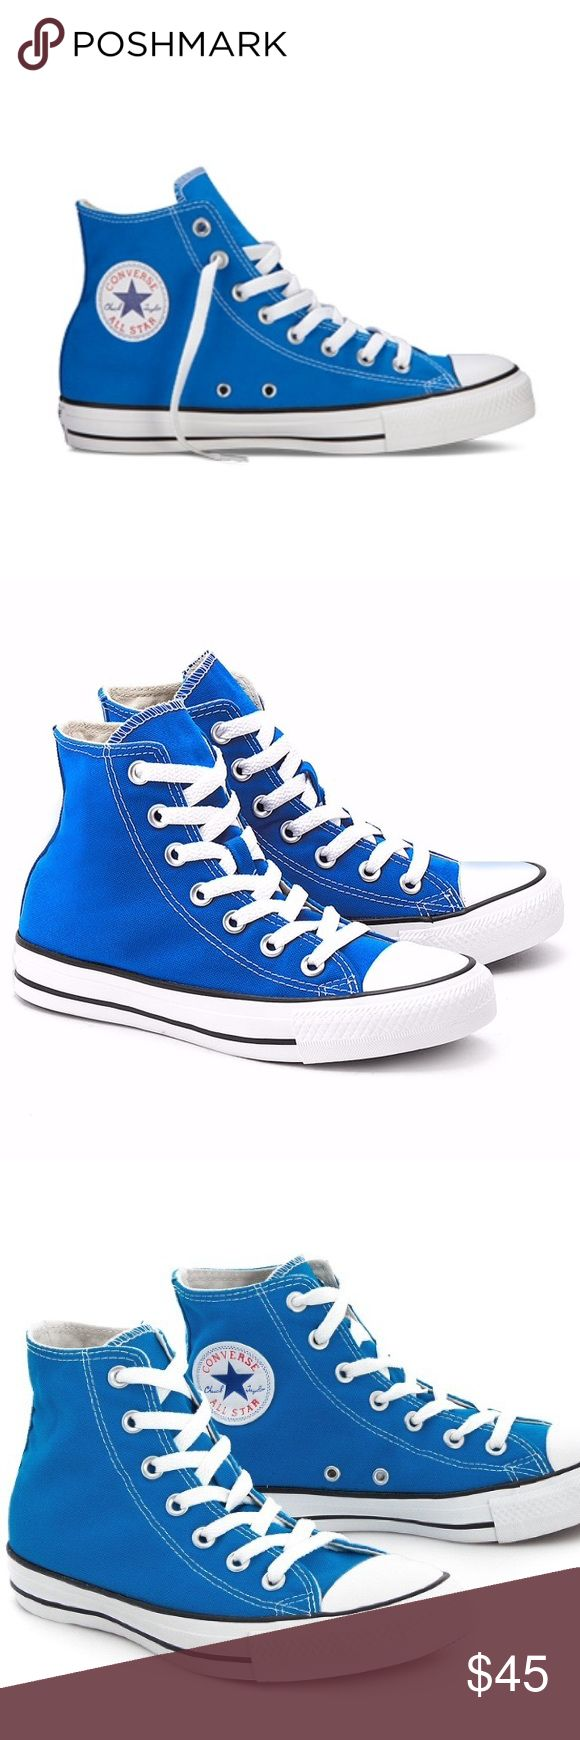 1 HOUR SALE! CONVERSE ELECTRIC BLUE SHOES SIZE 7 Brand new Converse Shoes Sneakers